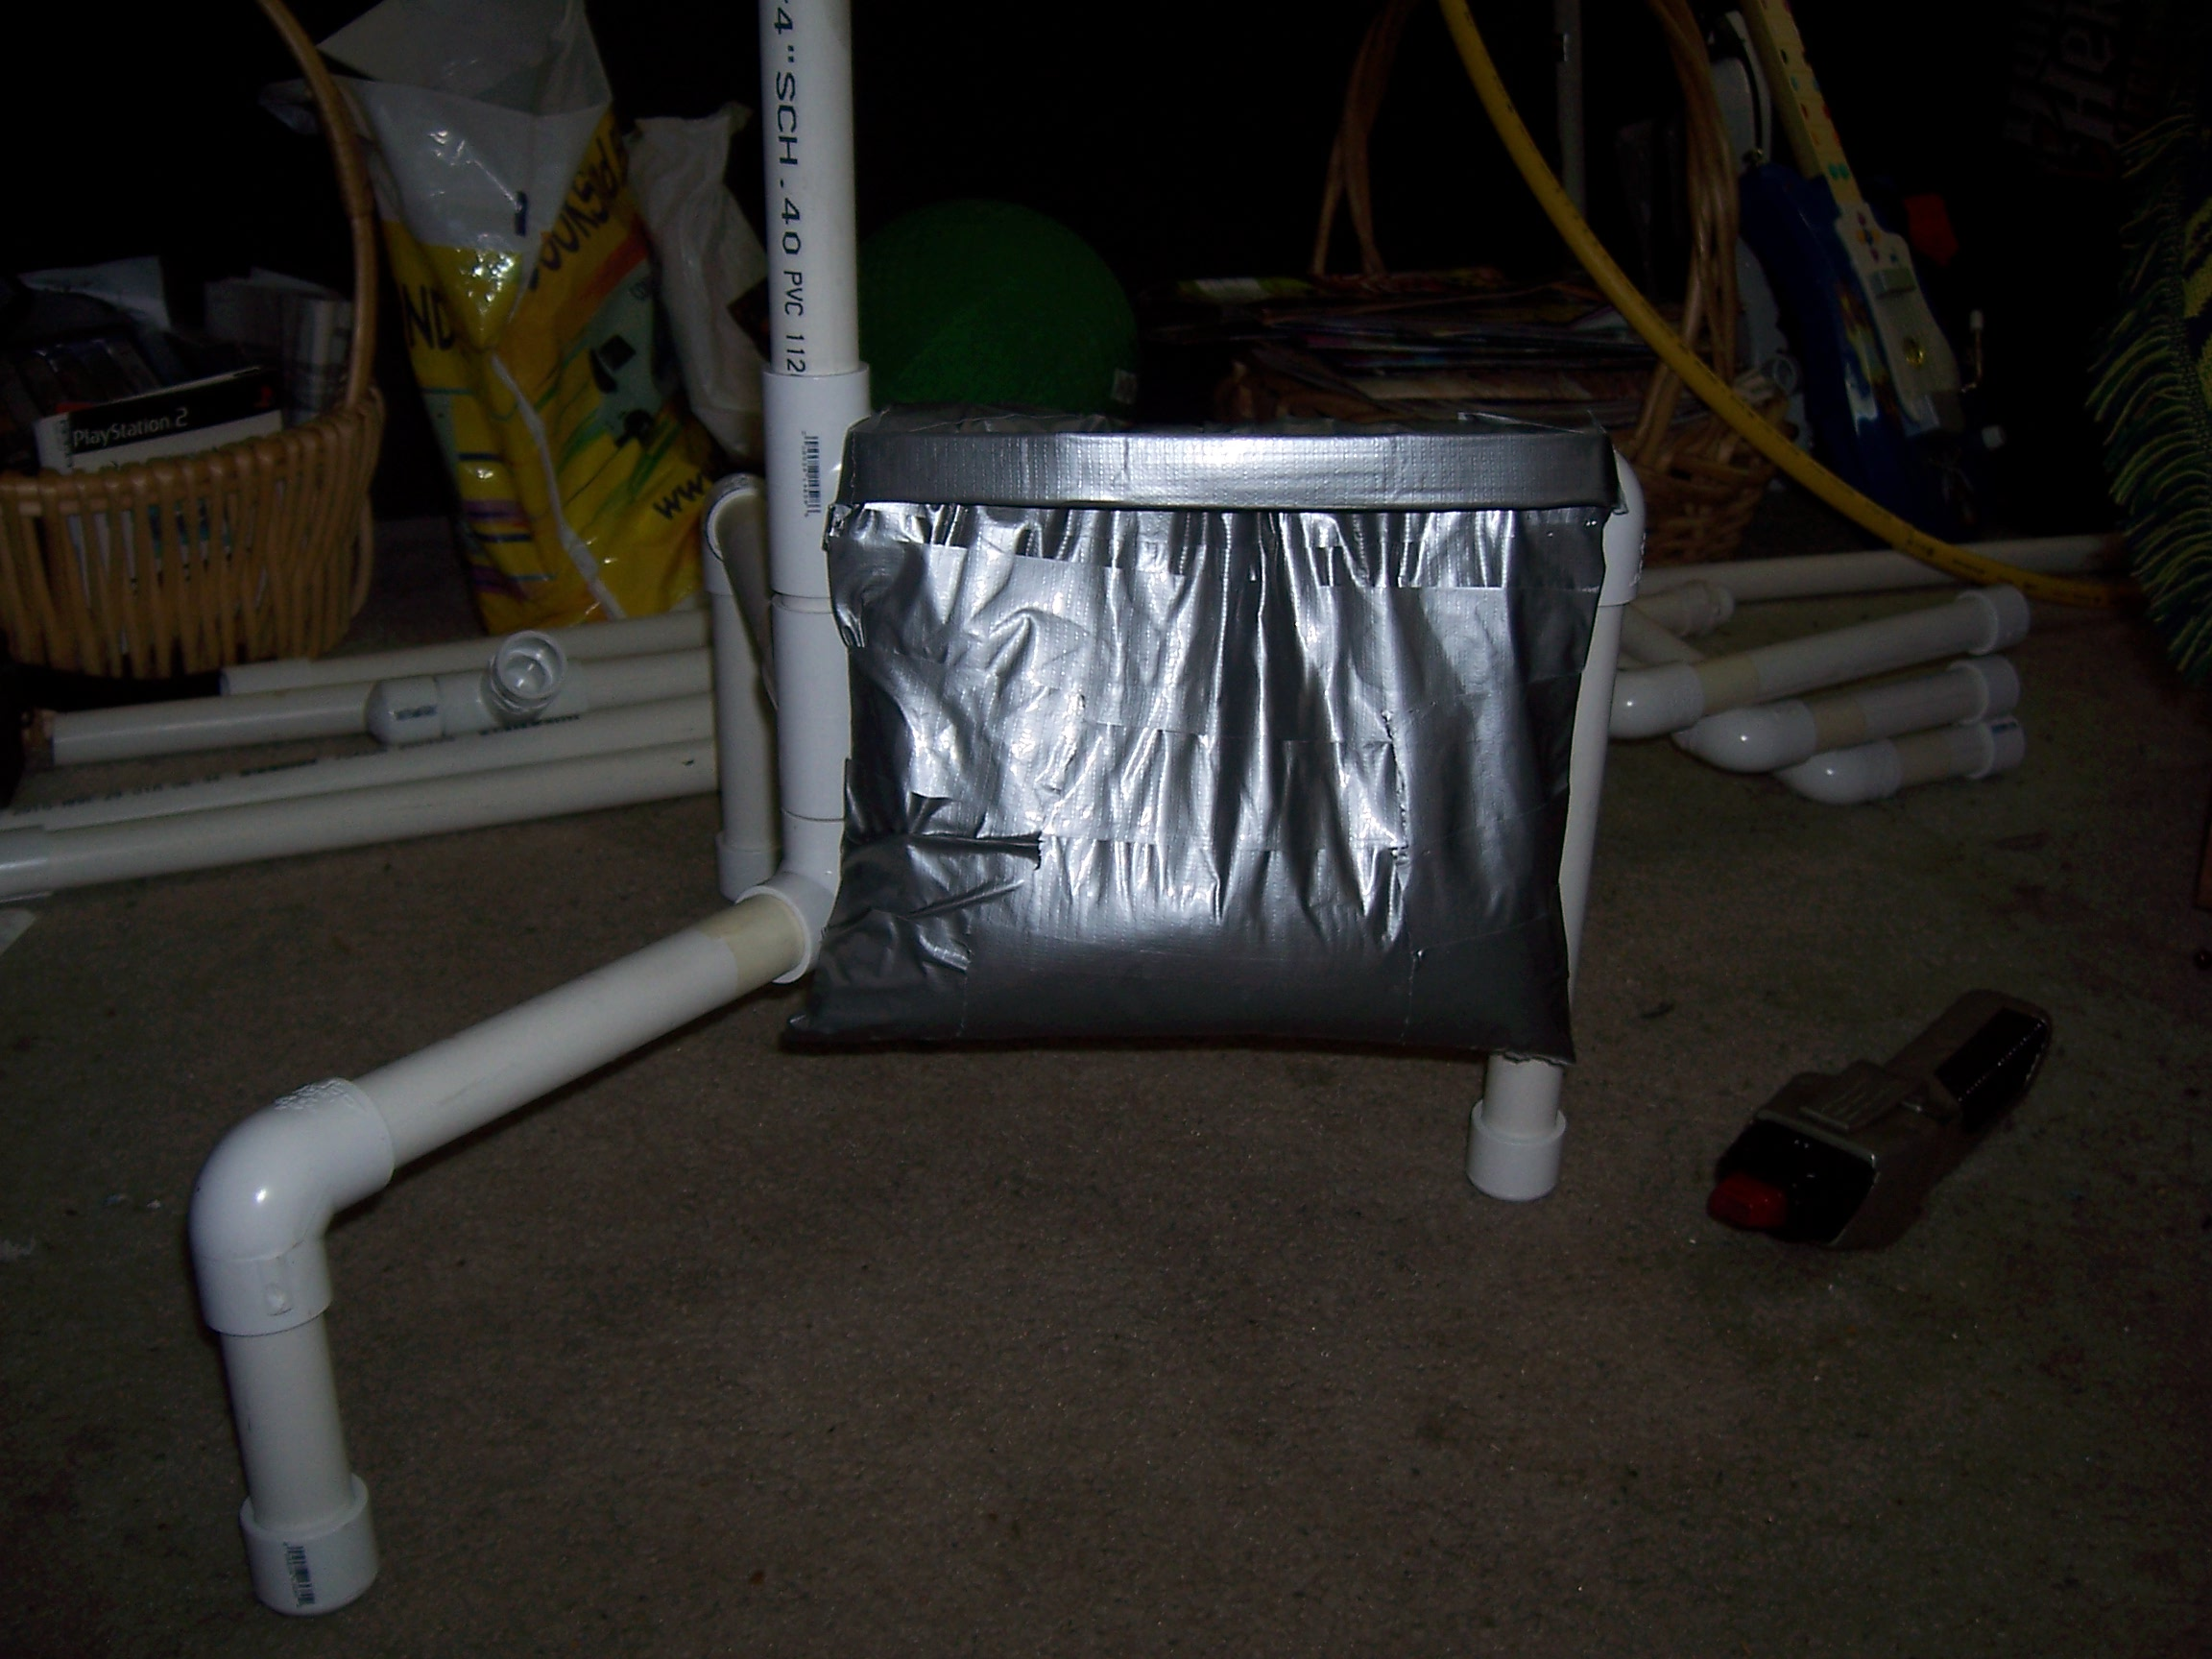 Creating DIY sandbags for your light stands